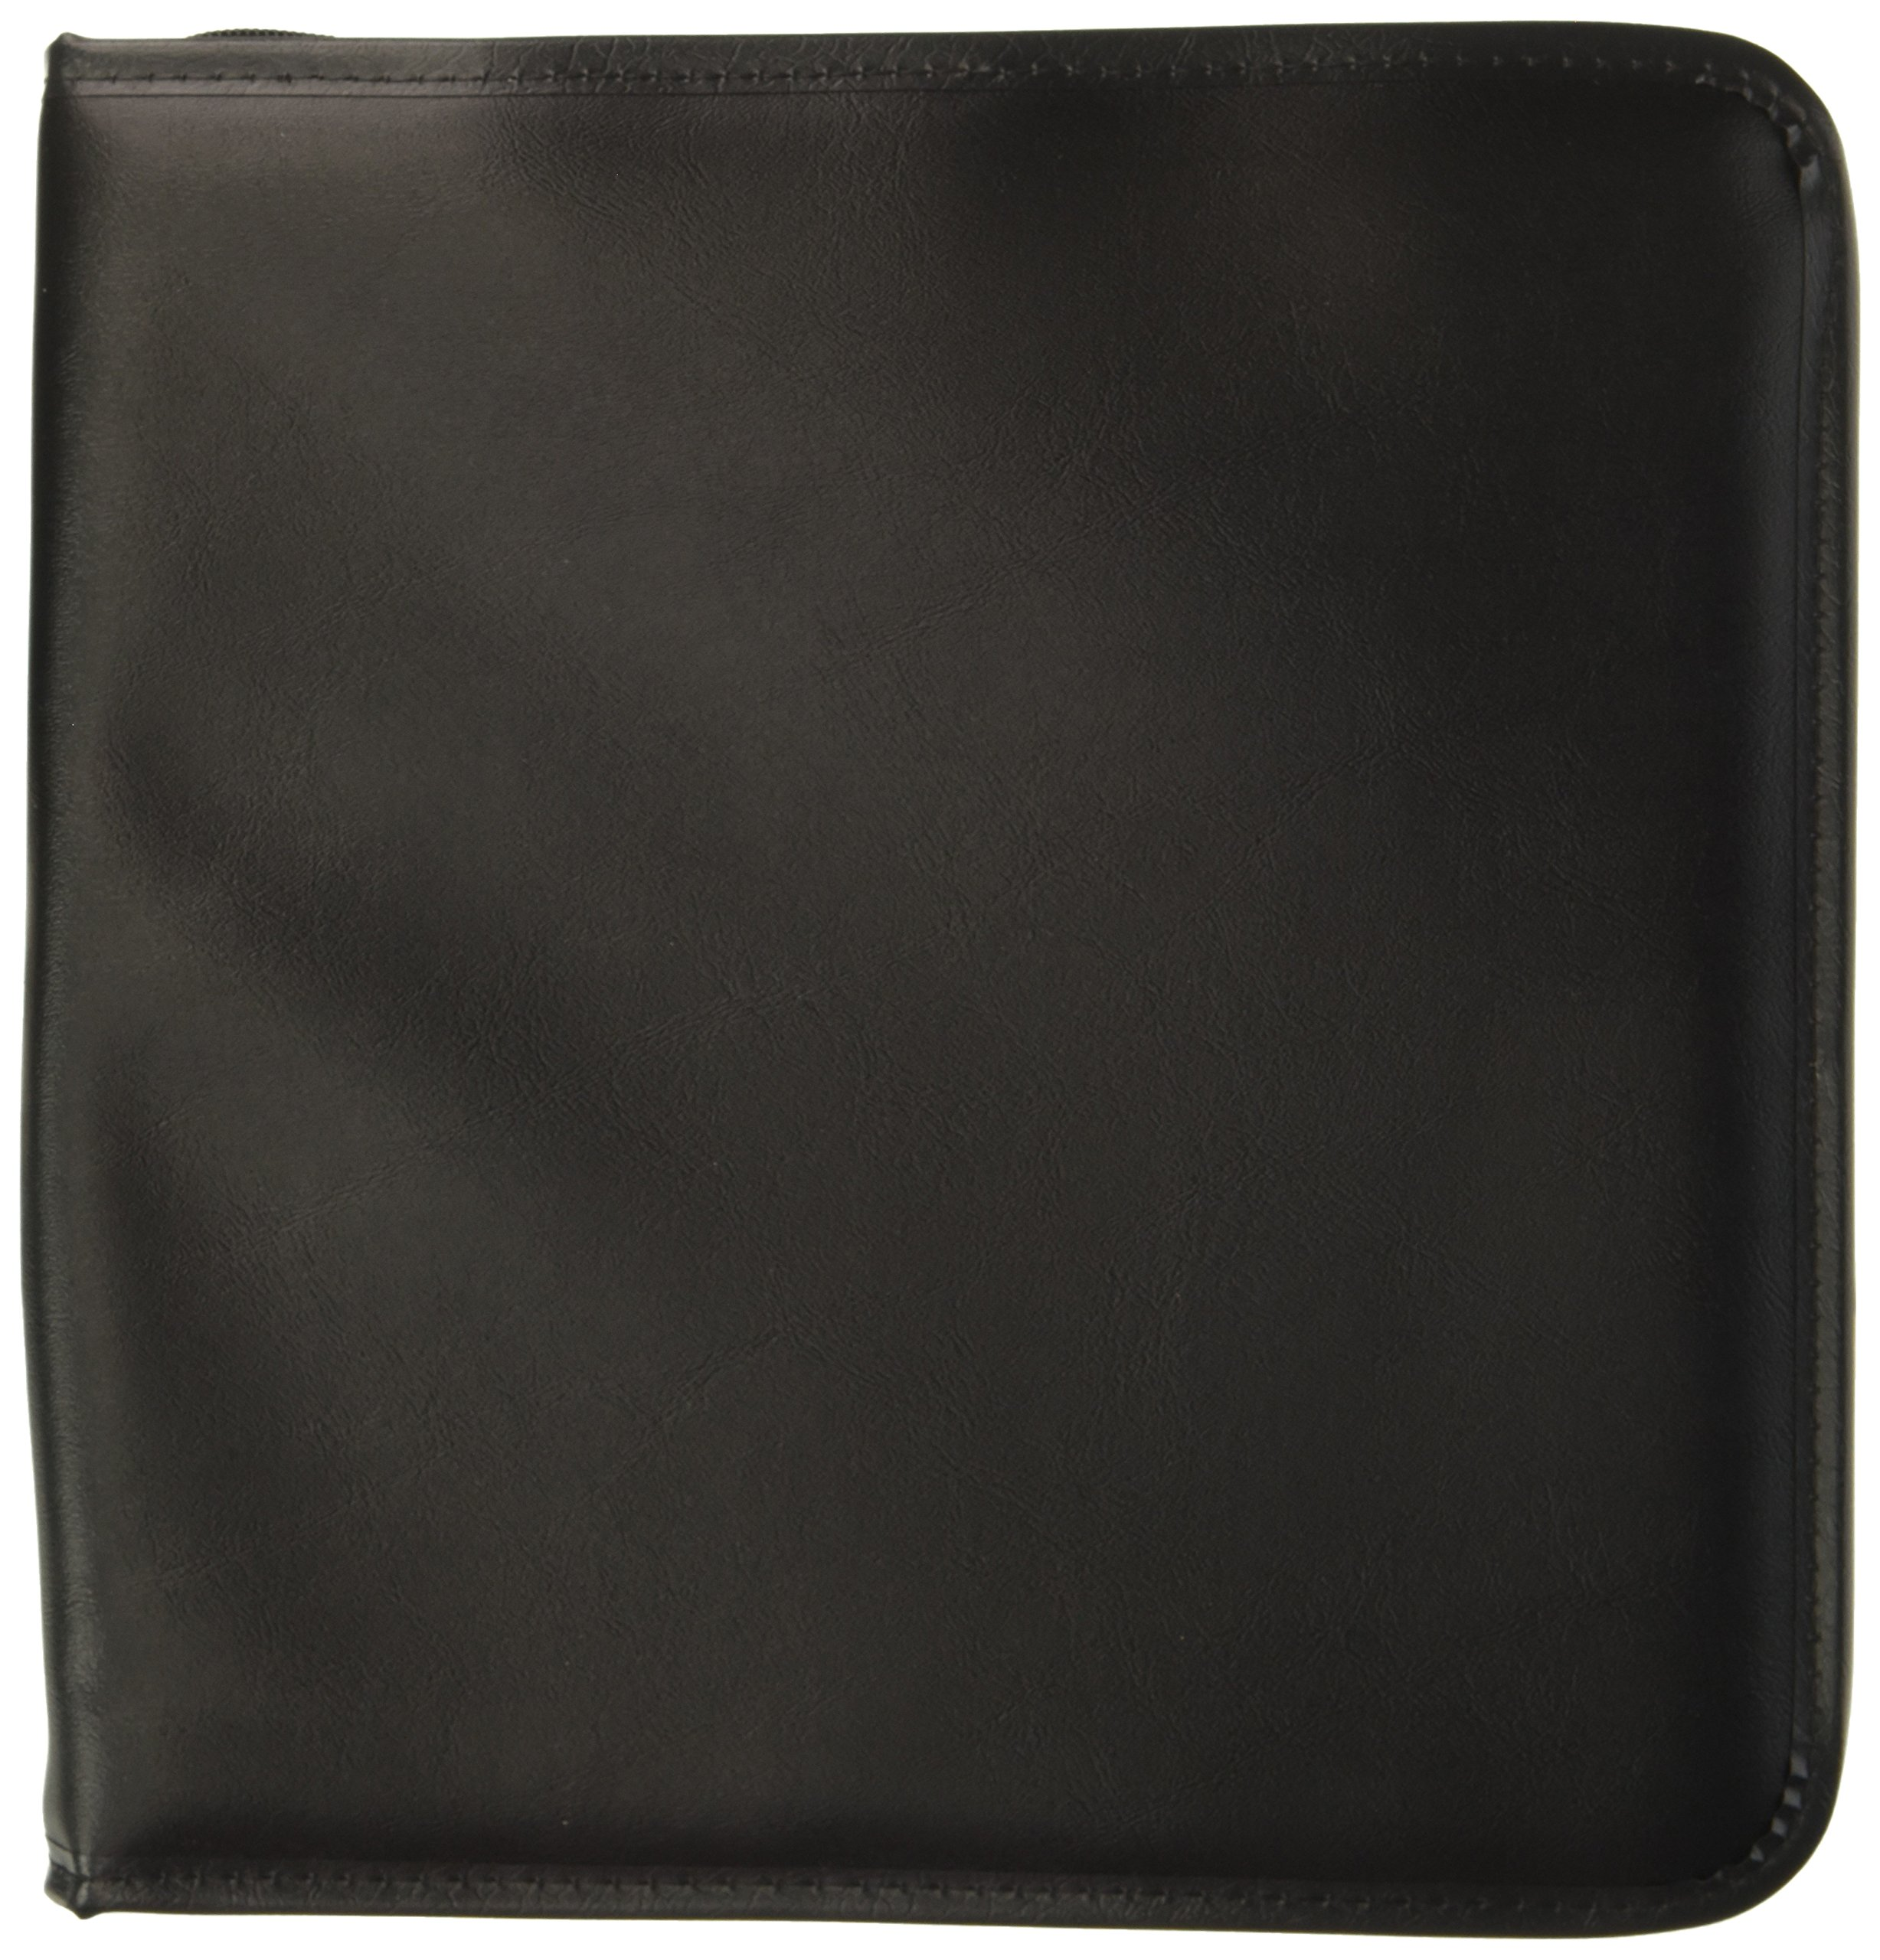 J.J. Keller 4179 Mid-Size Vinyl Zippered Loose-Leaf 3-Ring Binder